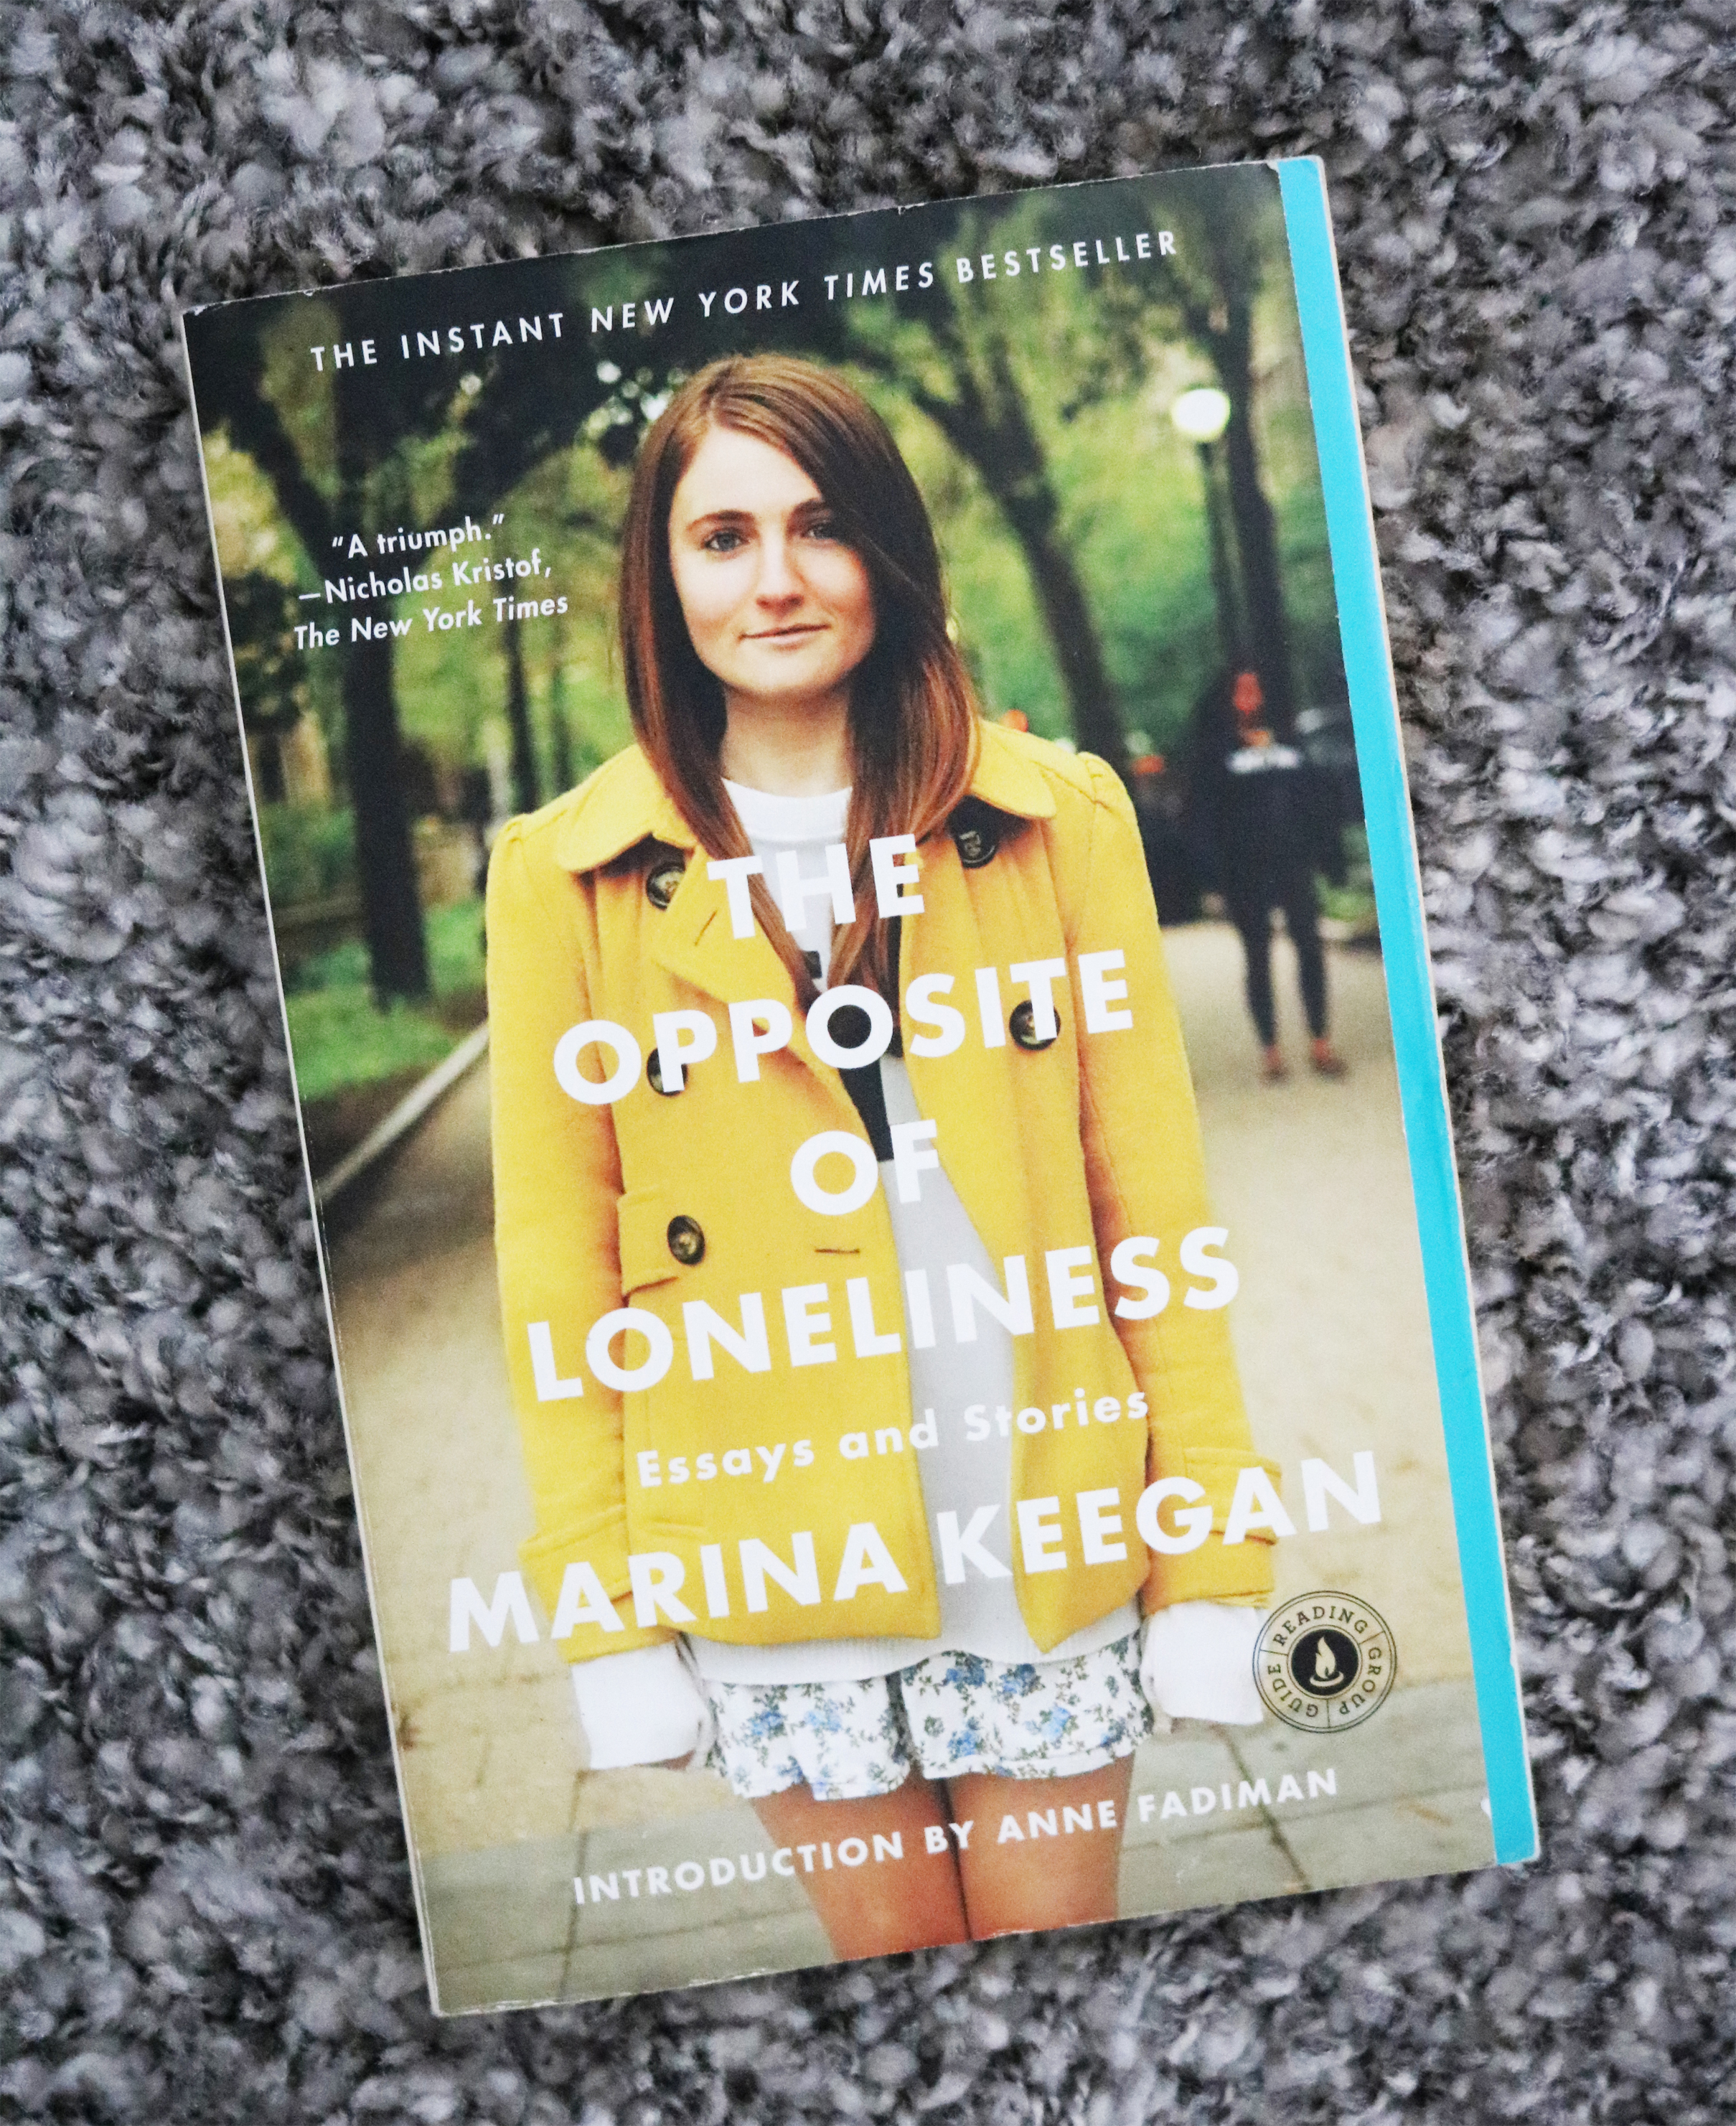 dress - Review: Book The Opposite video